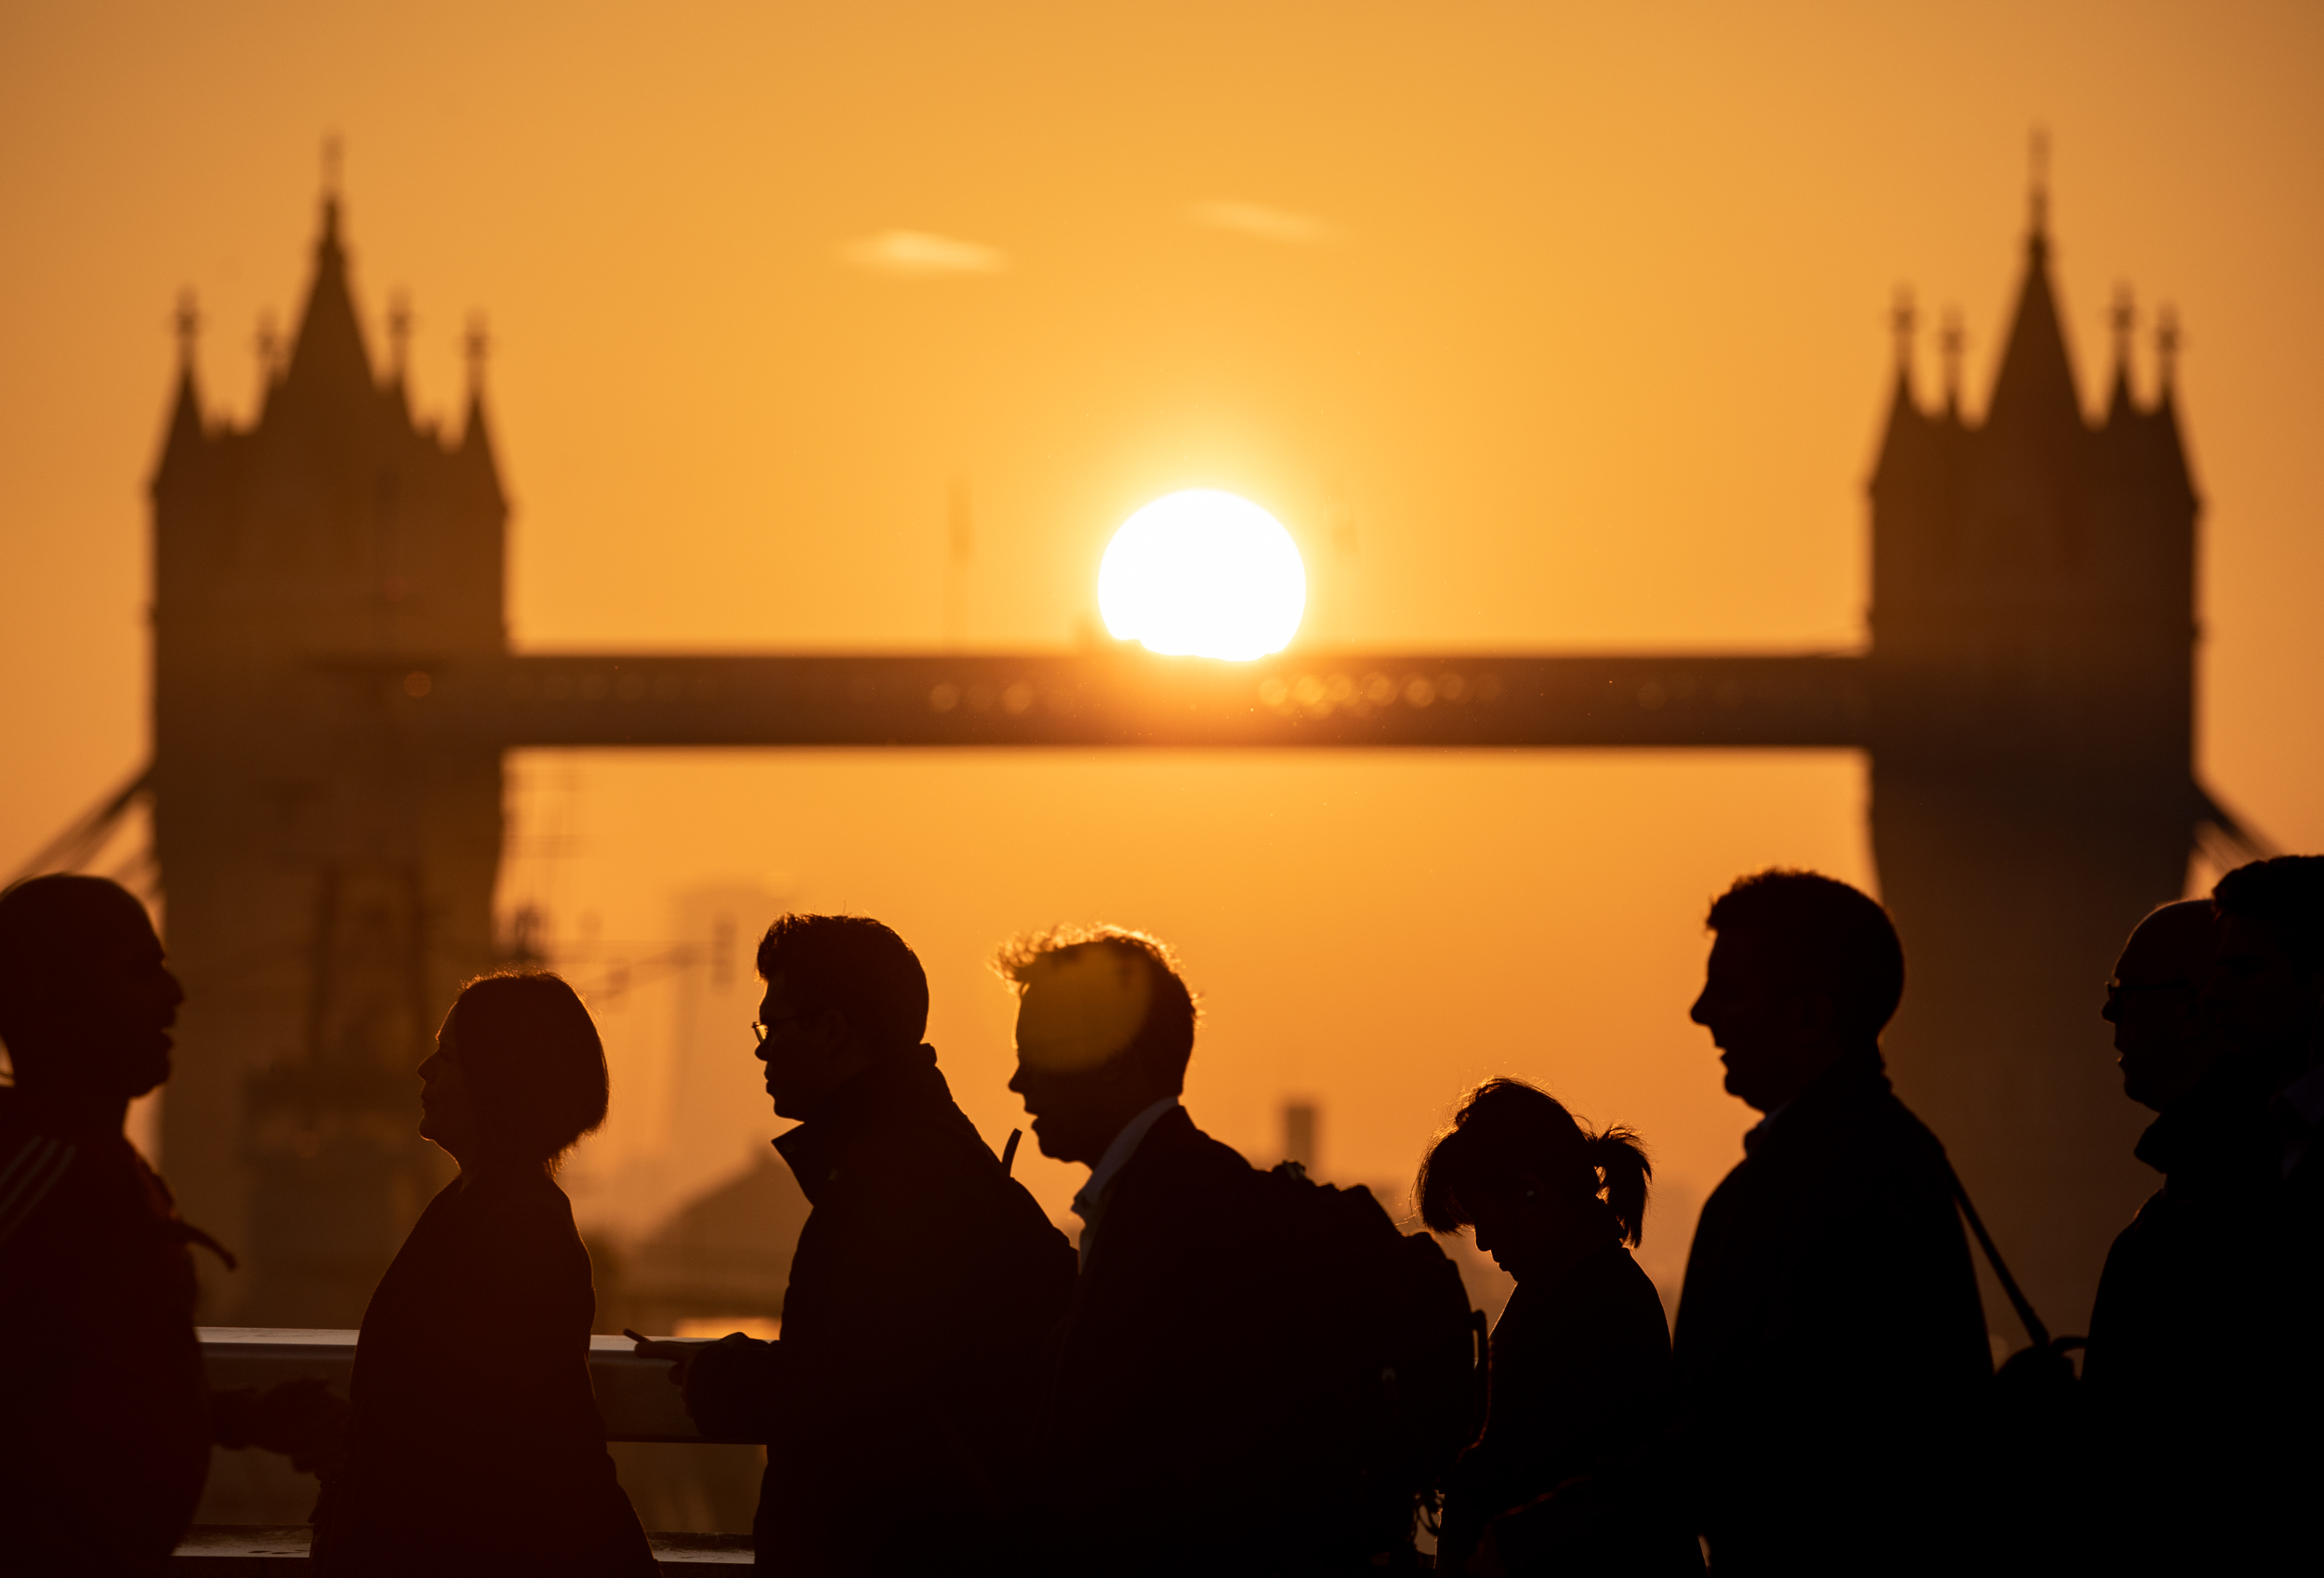 The sun rises through Tower Bridge in London, as the capital expects unseasonably warm weather later in the day, with temperatures set to reach up to 23 degrees Celsius. October 2018 - London, UK.